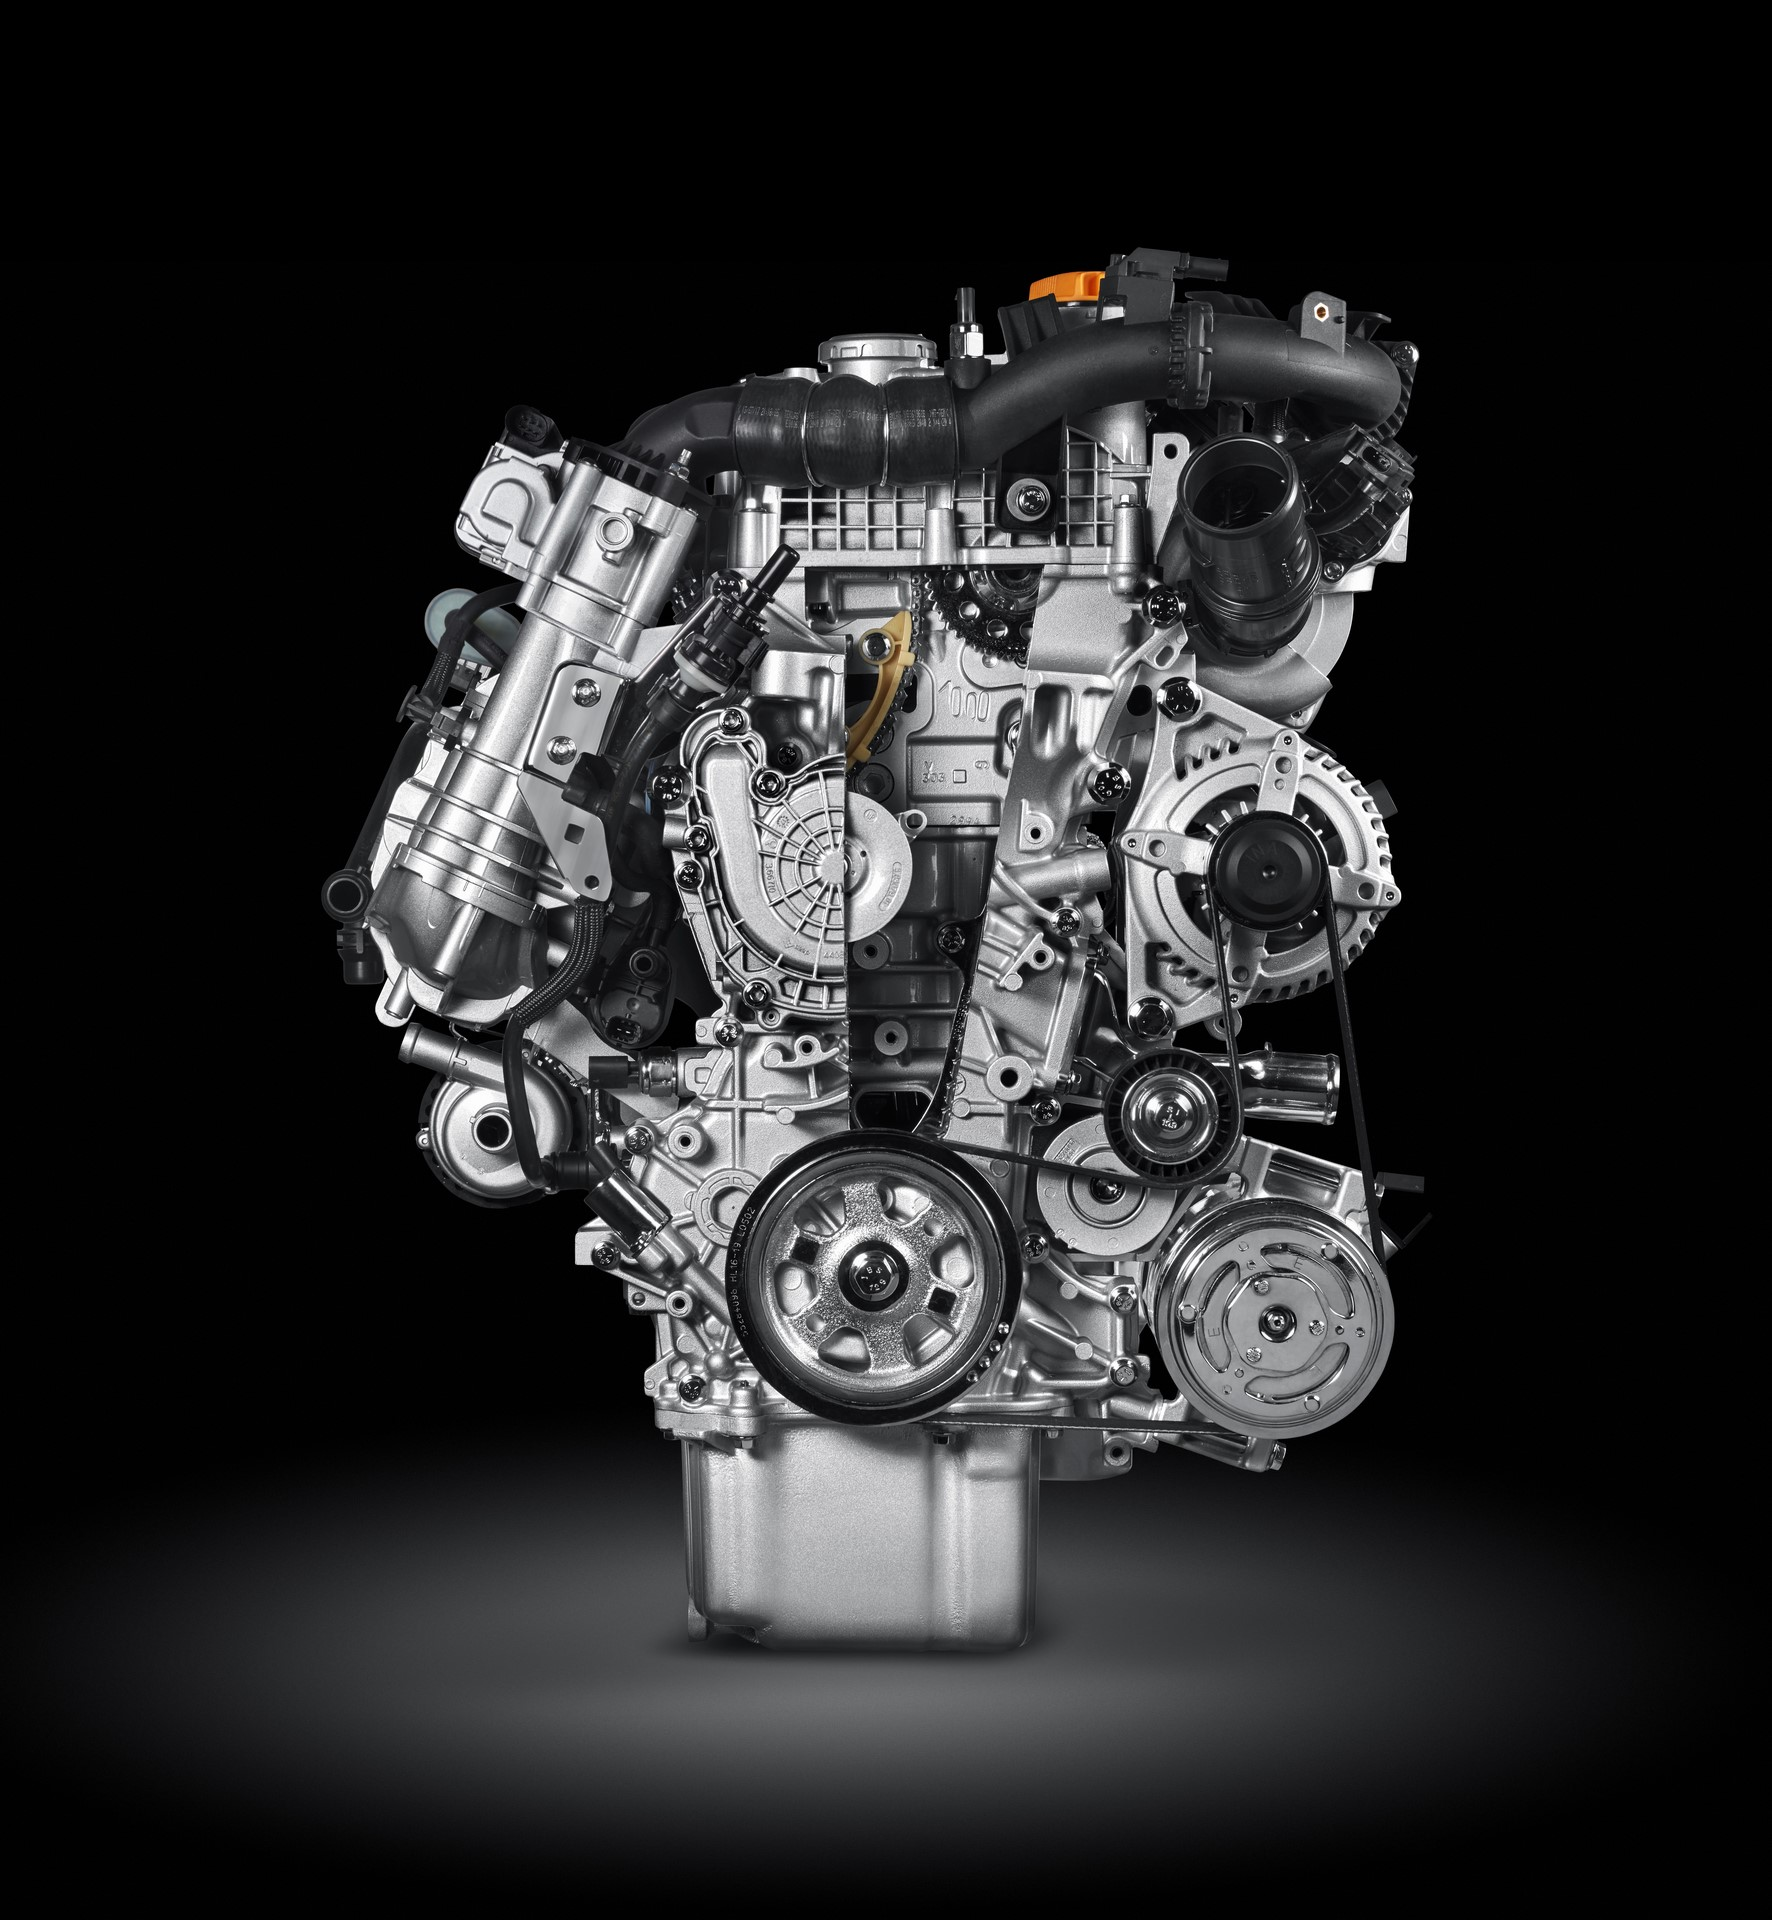 New-13L-Turbo-4-cylinder-150HP_02